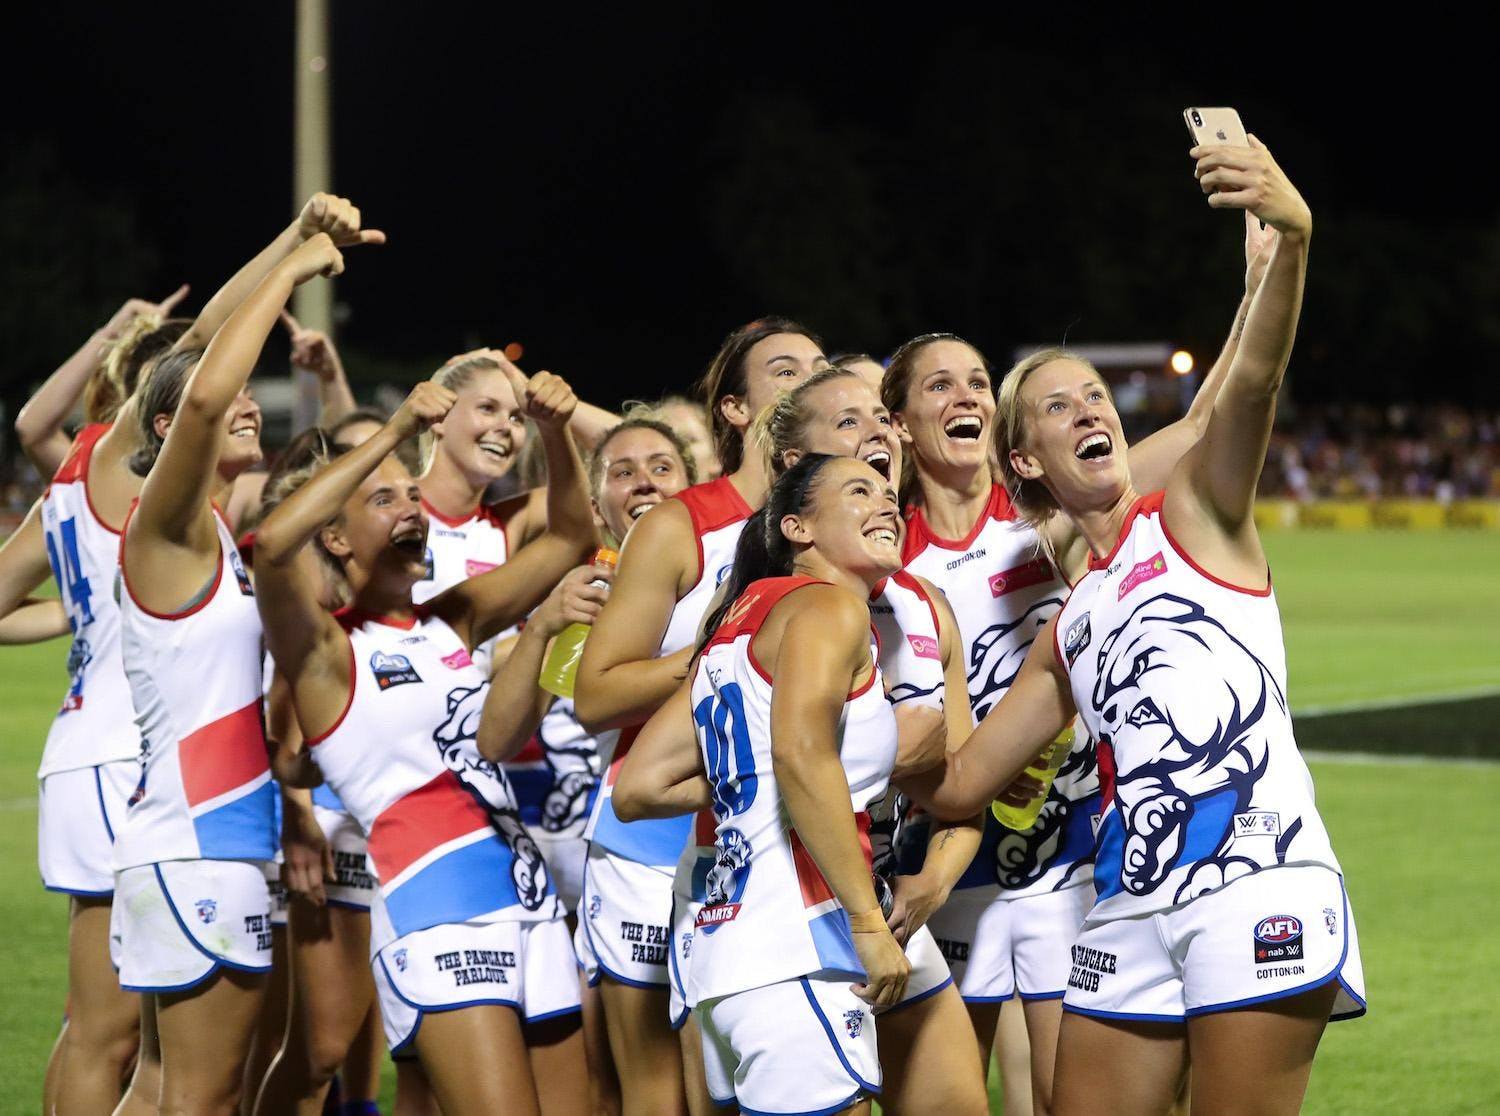 Aflw 30 Round 2 Western Bulldogs V Geelong Cats 9 Feb 2019